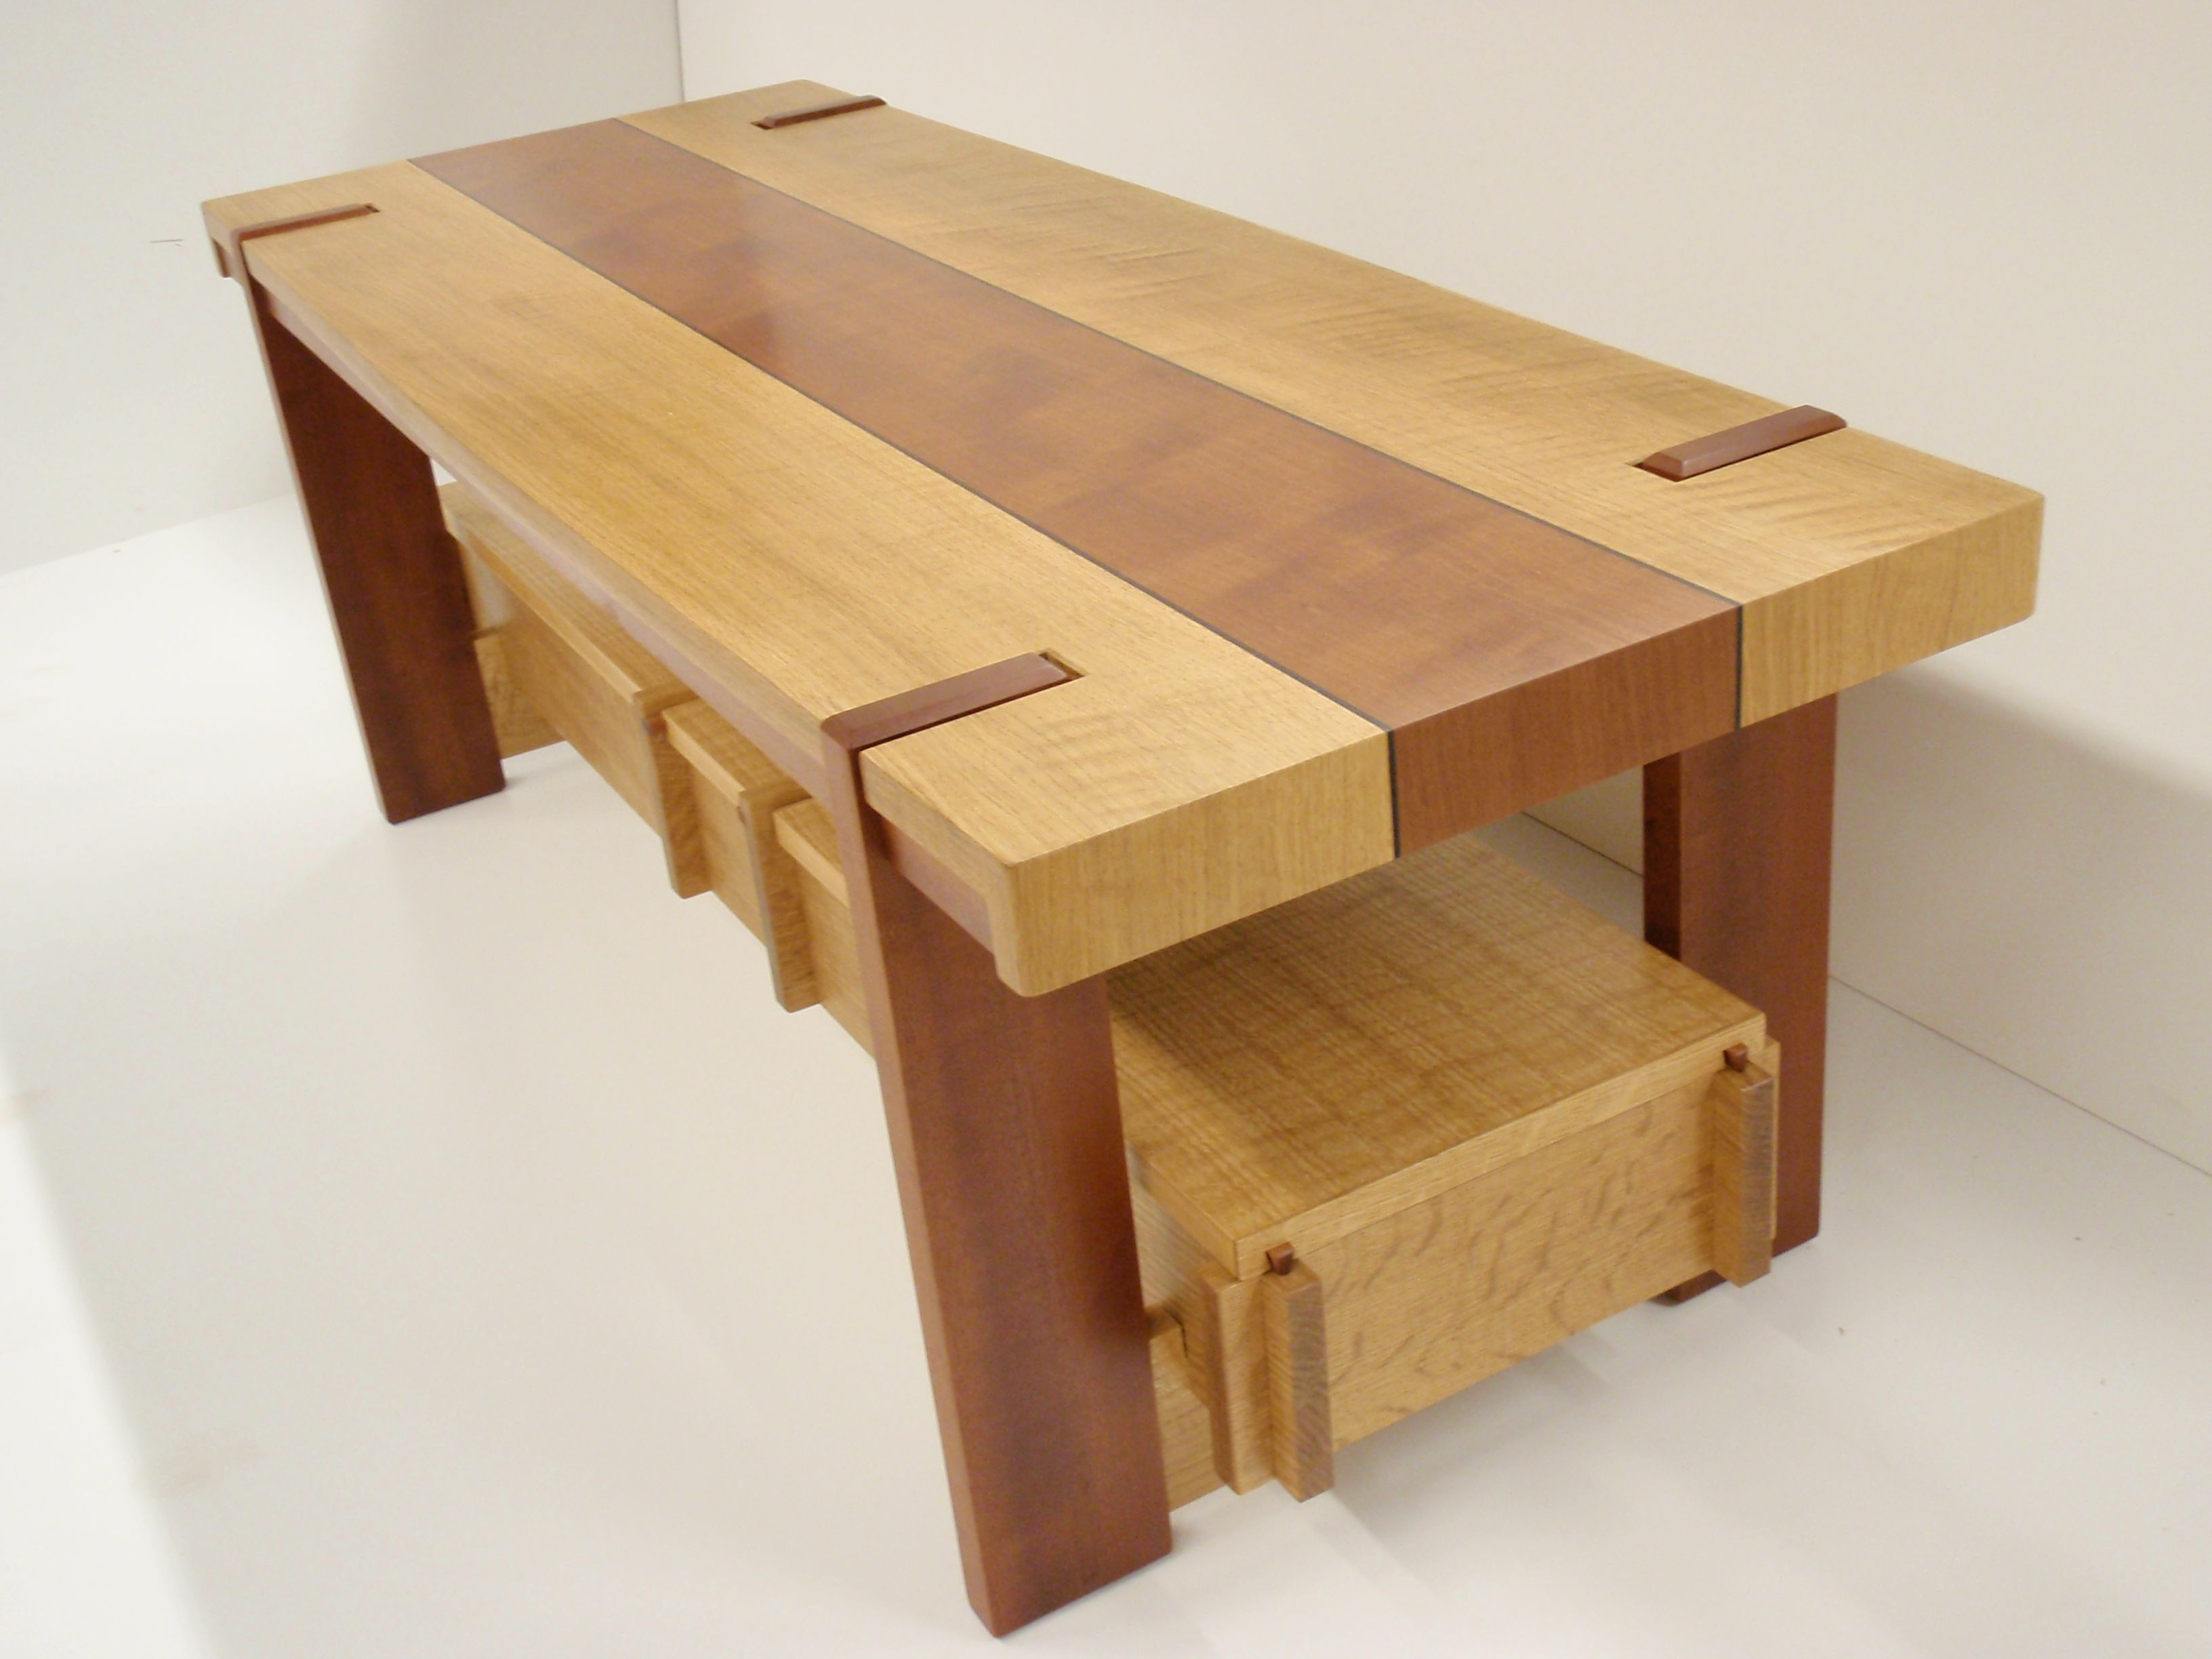 cofee table in white oak and unknown secies with ebony inlays